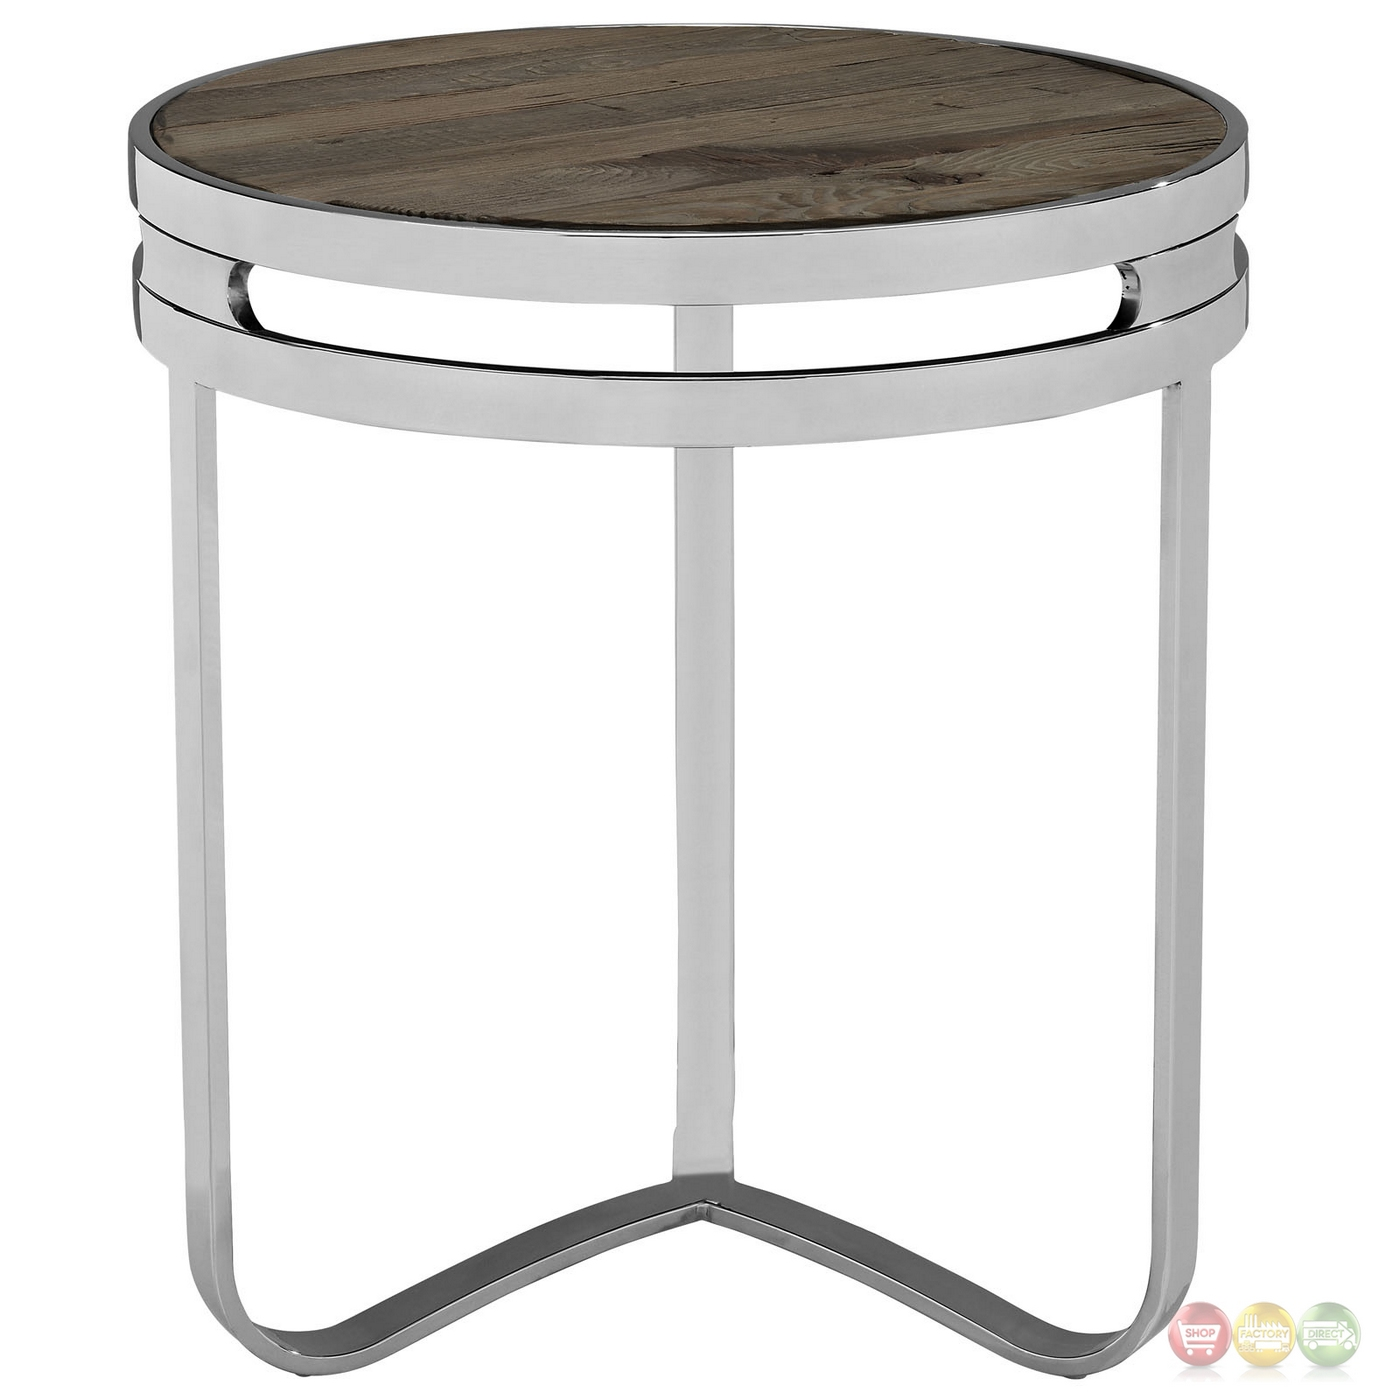 Provision industrial modern wood top end table with chrome